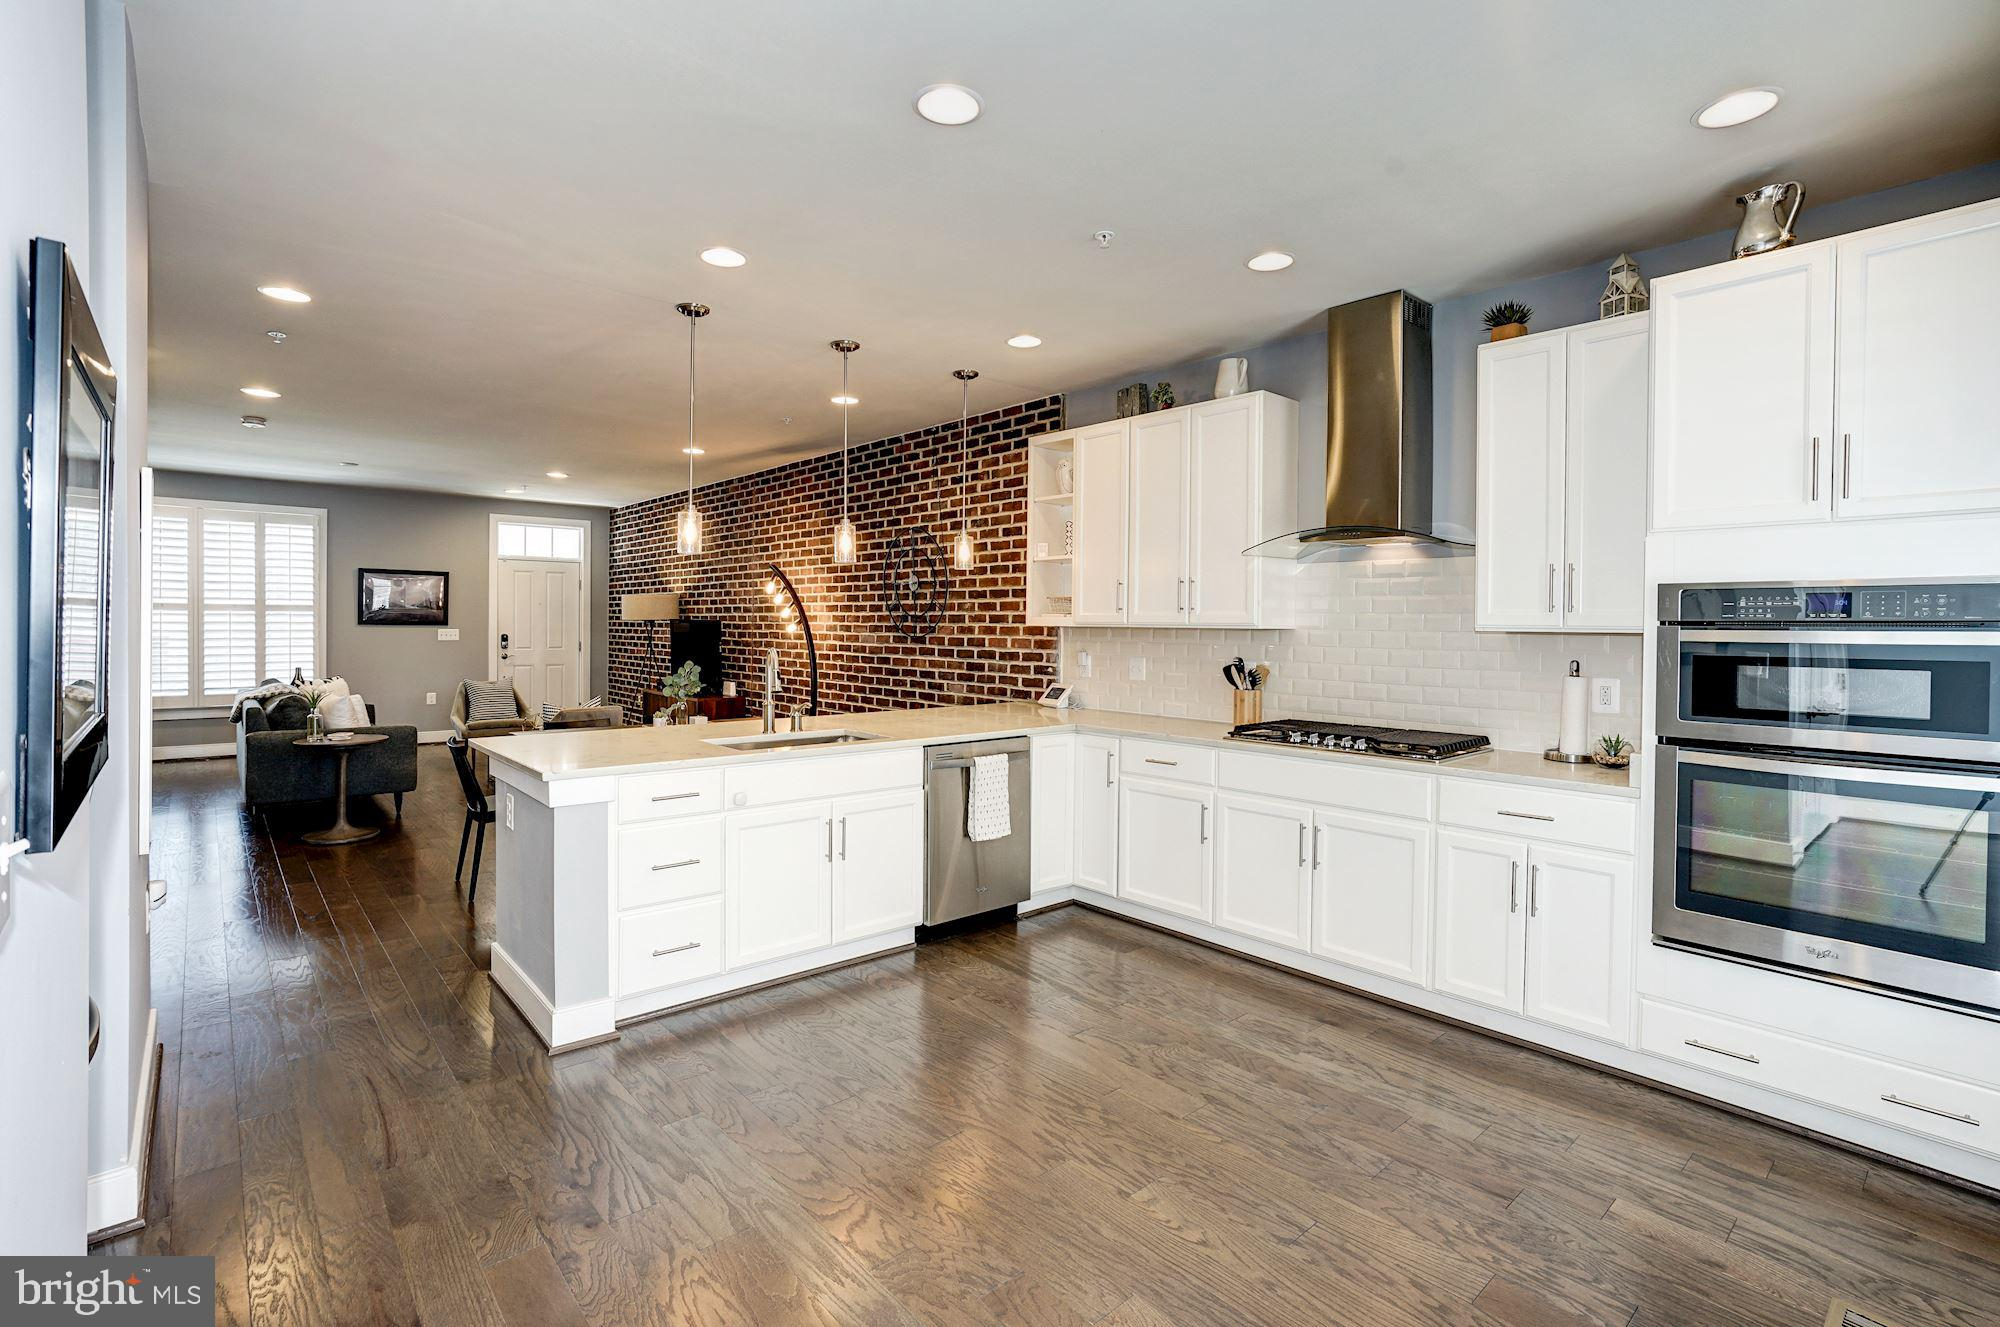 Rarely available in Potomac Yard! 4 level town house with a walk-out basement and a fenced back yard. Estimated 3700SF including basement. Entry into home on main level creates for a less vertical living.  Open floor plan. Main level has hardwood floors, recessed lighting, pendant lighting, plantation shutters. Large brick accent wall in living/dining  room. Kitchen with quartz counters, breakfast bar, SS appliances, back splash is open to a separate breakfast room. Breakfast room has a wall length pantry and opens onto a trex deck  with view of Masonic Temple. The upper level boasts of a master suite and a second bedroom with en-suite bath. Separate laundry room on this level has shelving and a retractable clothes line.  The spacious top level features a family room and office area with view of  Masonic Temple, in addition to a third bedroom with walk-in closet and a third bath plus utility closet.   Upper two levels have updated luxury vinyl plank flooring.  Lower level is a large walk-out basement waiting for your finishing touches... It is dry-walled and has rough-in for a bath. In addition it also has a large utility / storage room with windows and storage under the stairs. Great use as storage or finish off as as you please ..a possible media/game room, in-law/au-pair suite?  Basement opens onto a brick patio and a fenced-in back yard. This townhouse is within walking distance to Braddock metro. Amenities galore: playground, dog park, sports courts, playing fields, walking path. Near Del Ray main avenue w/ eateries and restaurants. Just south of Crystal City, future Amazon HQ2, near Old Town Alexandria, National Reagan airport, Pentagon. Mins to DC , National Harbor, Ft. Belvoir...